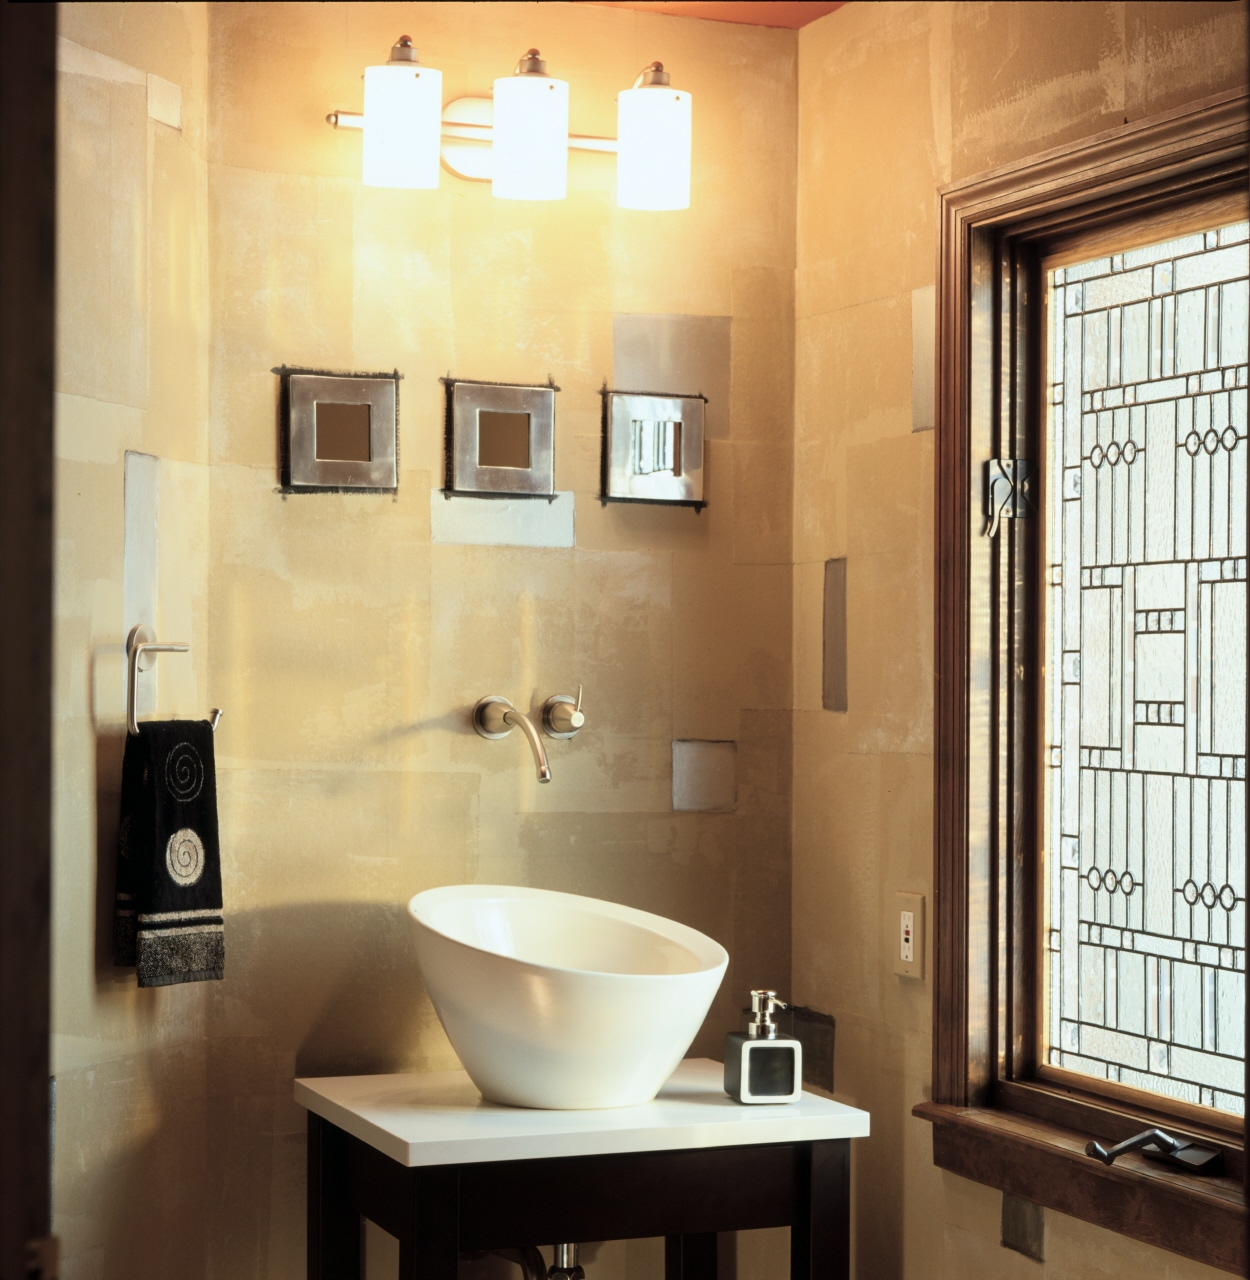 Half bath design ideas home design Small half bathroom design ideas